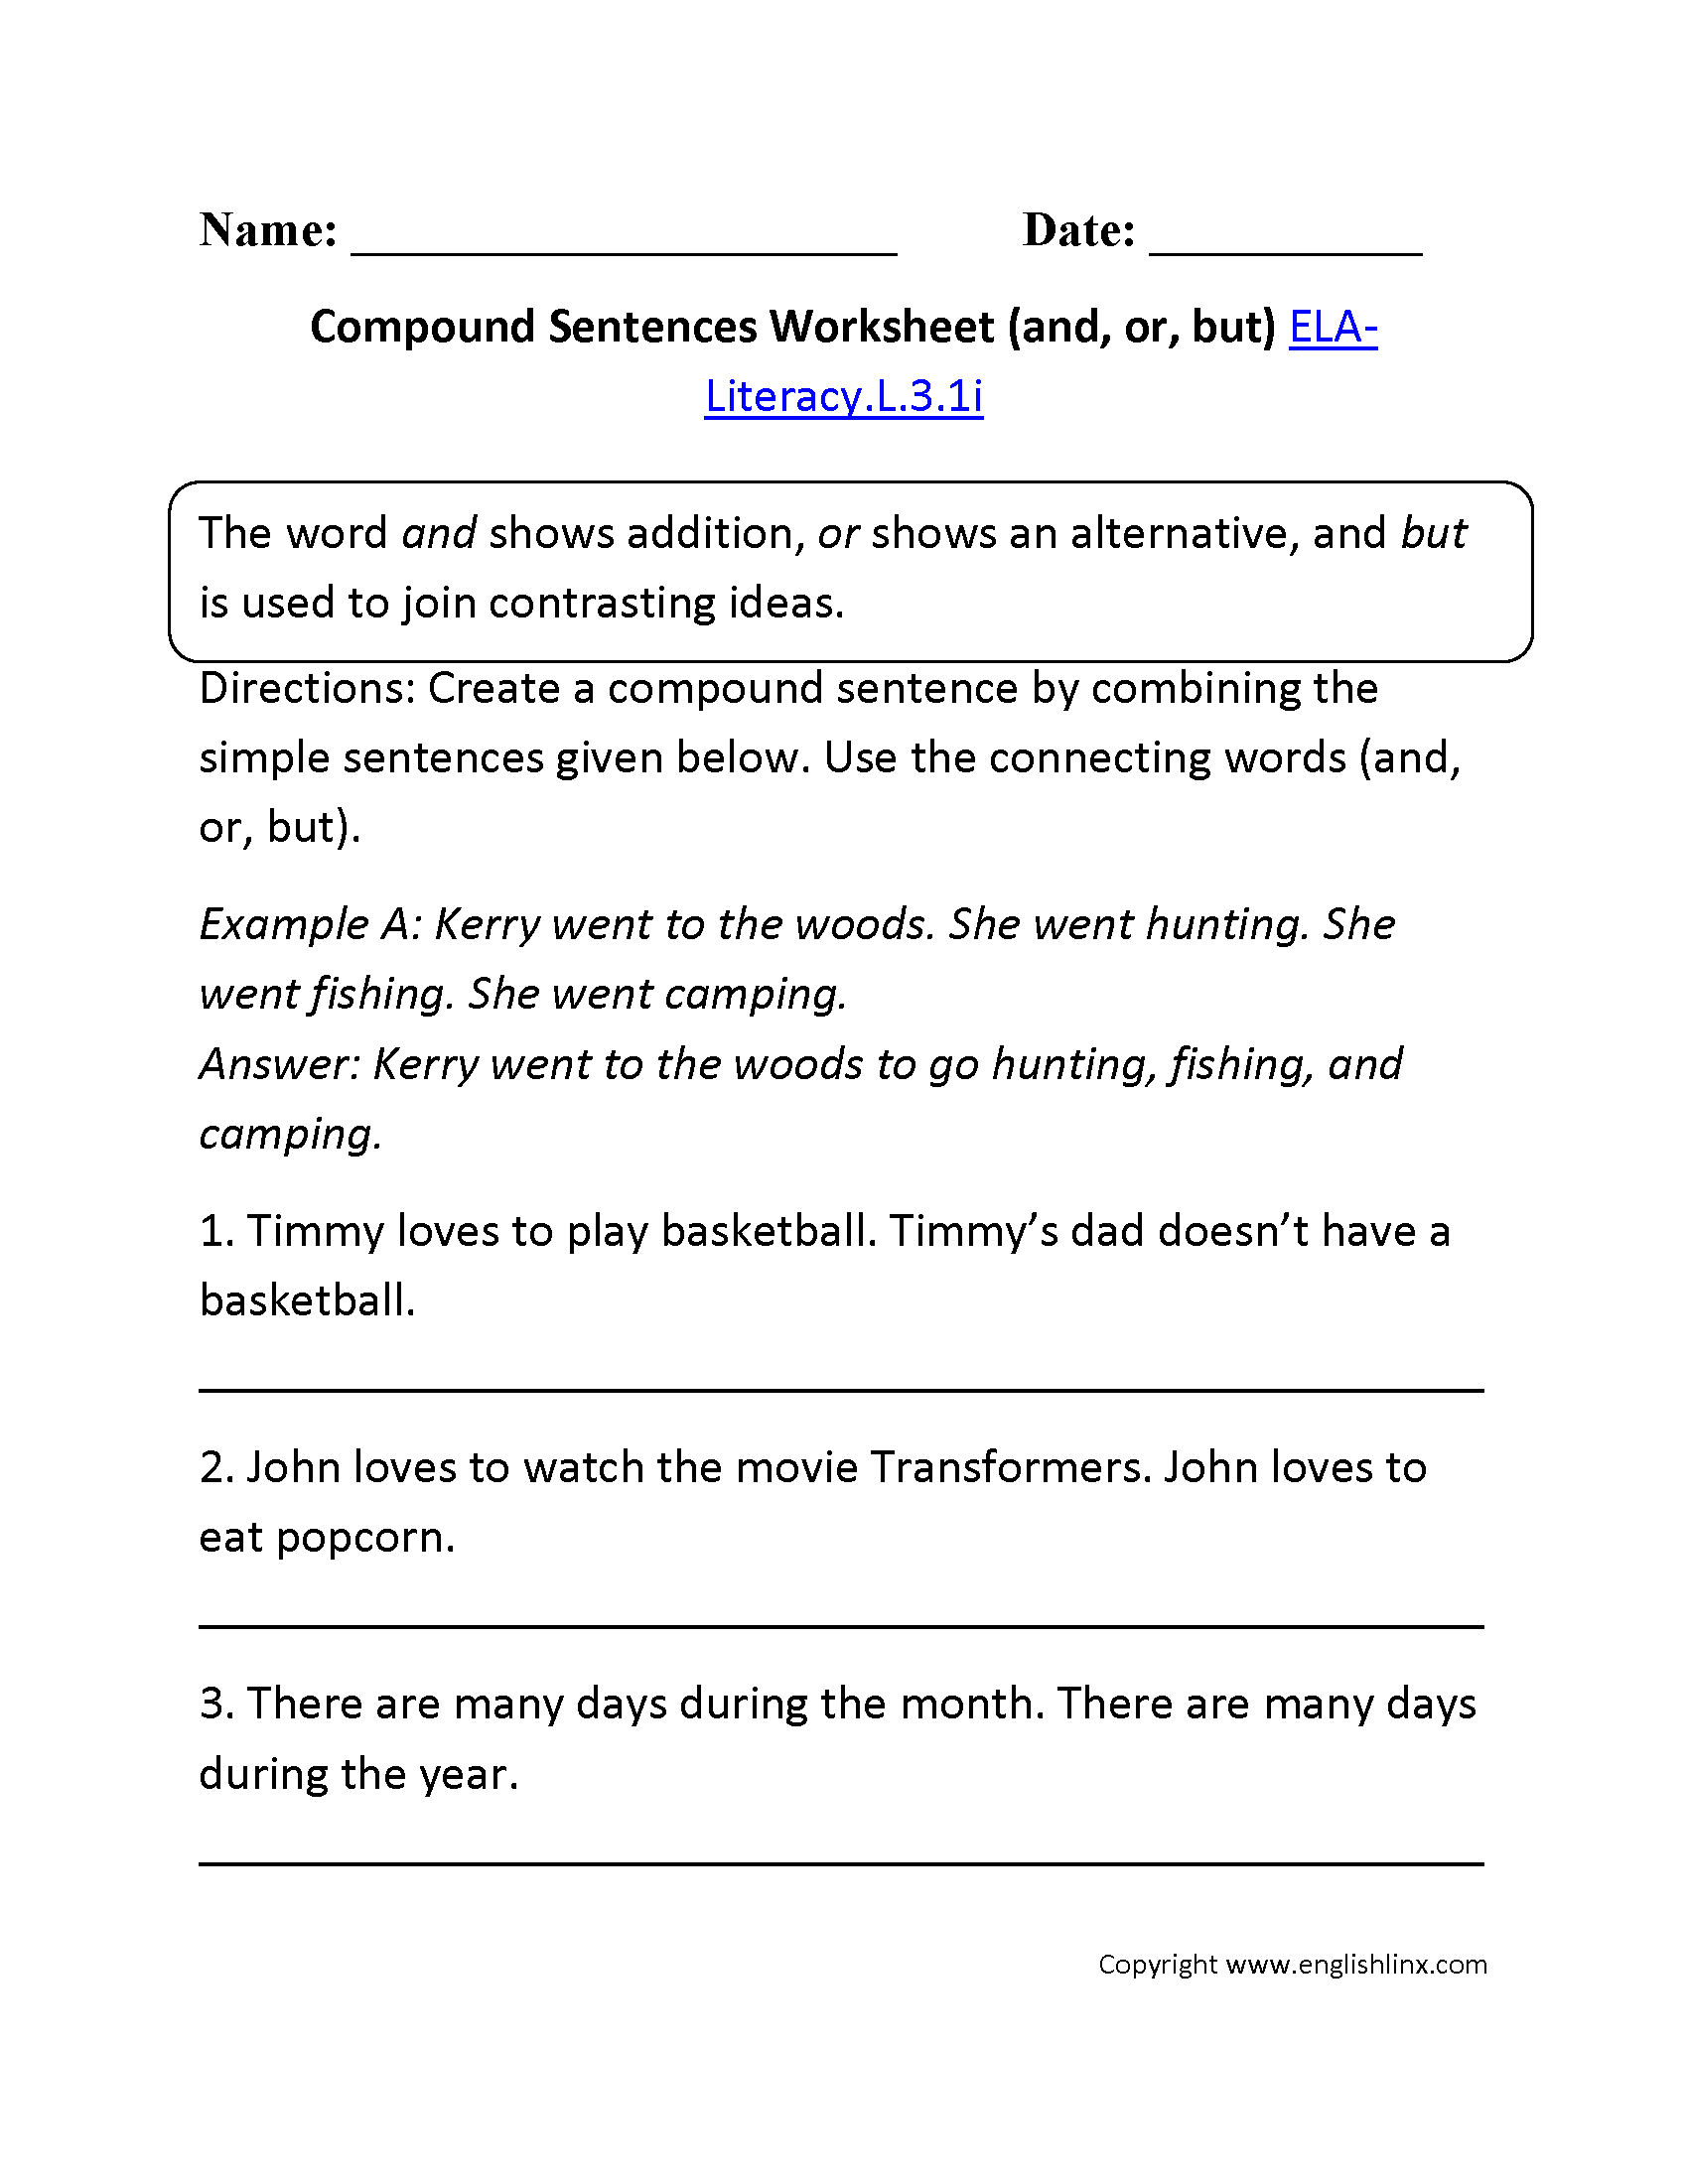 Compound Sentence Worksheet 1 L31 L31 – Simple Compound and Complex Sentences Worksheet with Answers